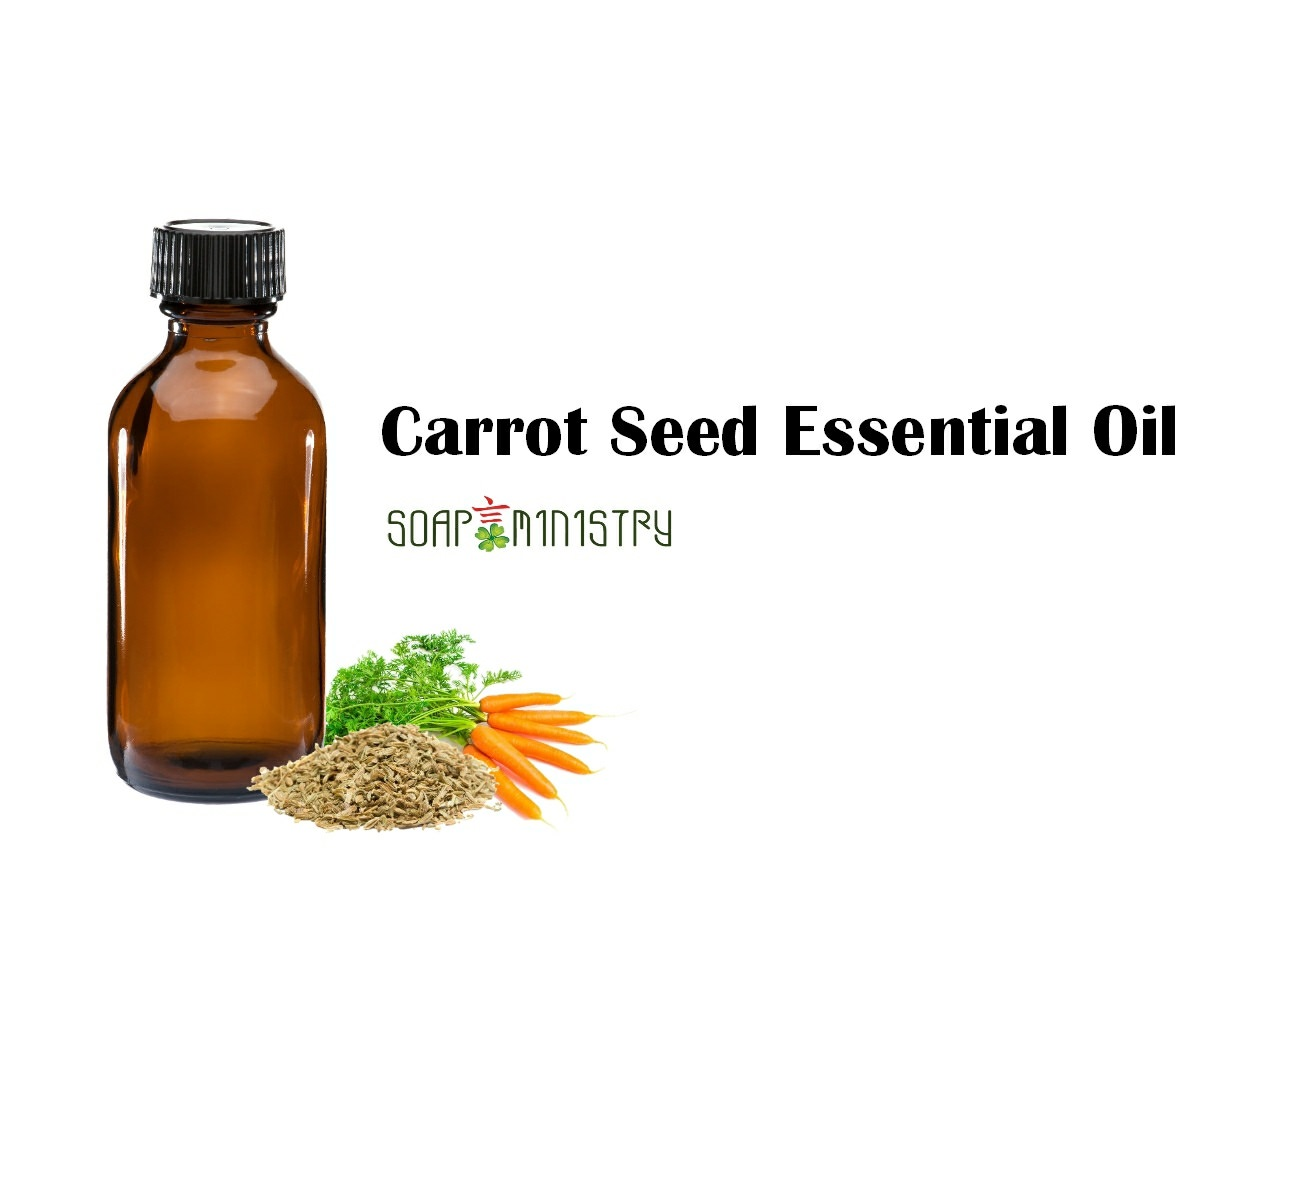 Carrot Seed Essential Oil 1L